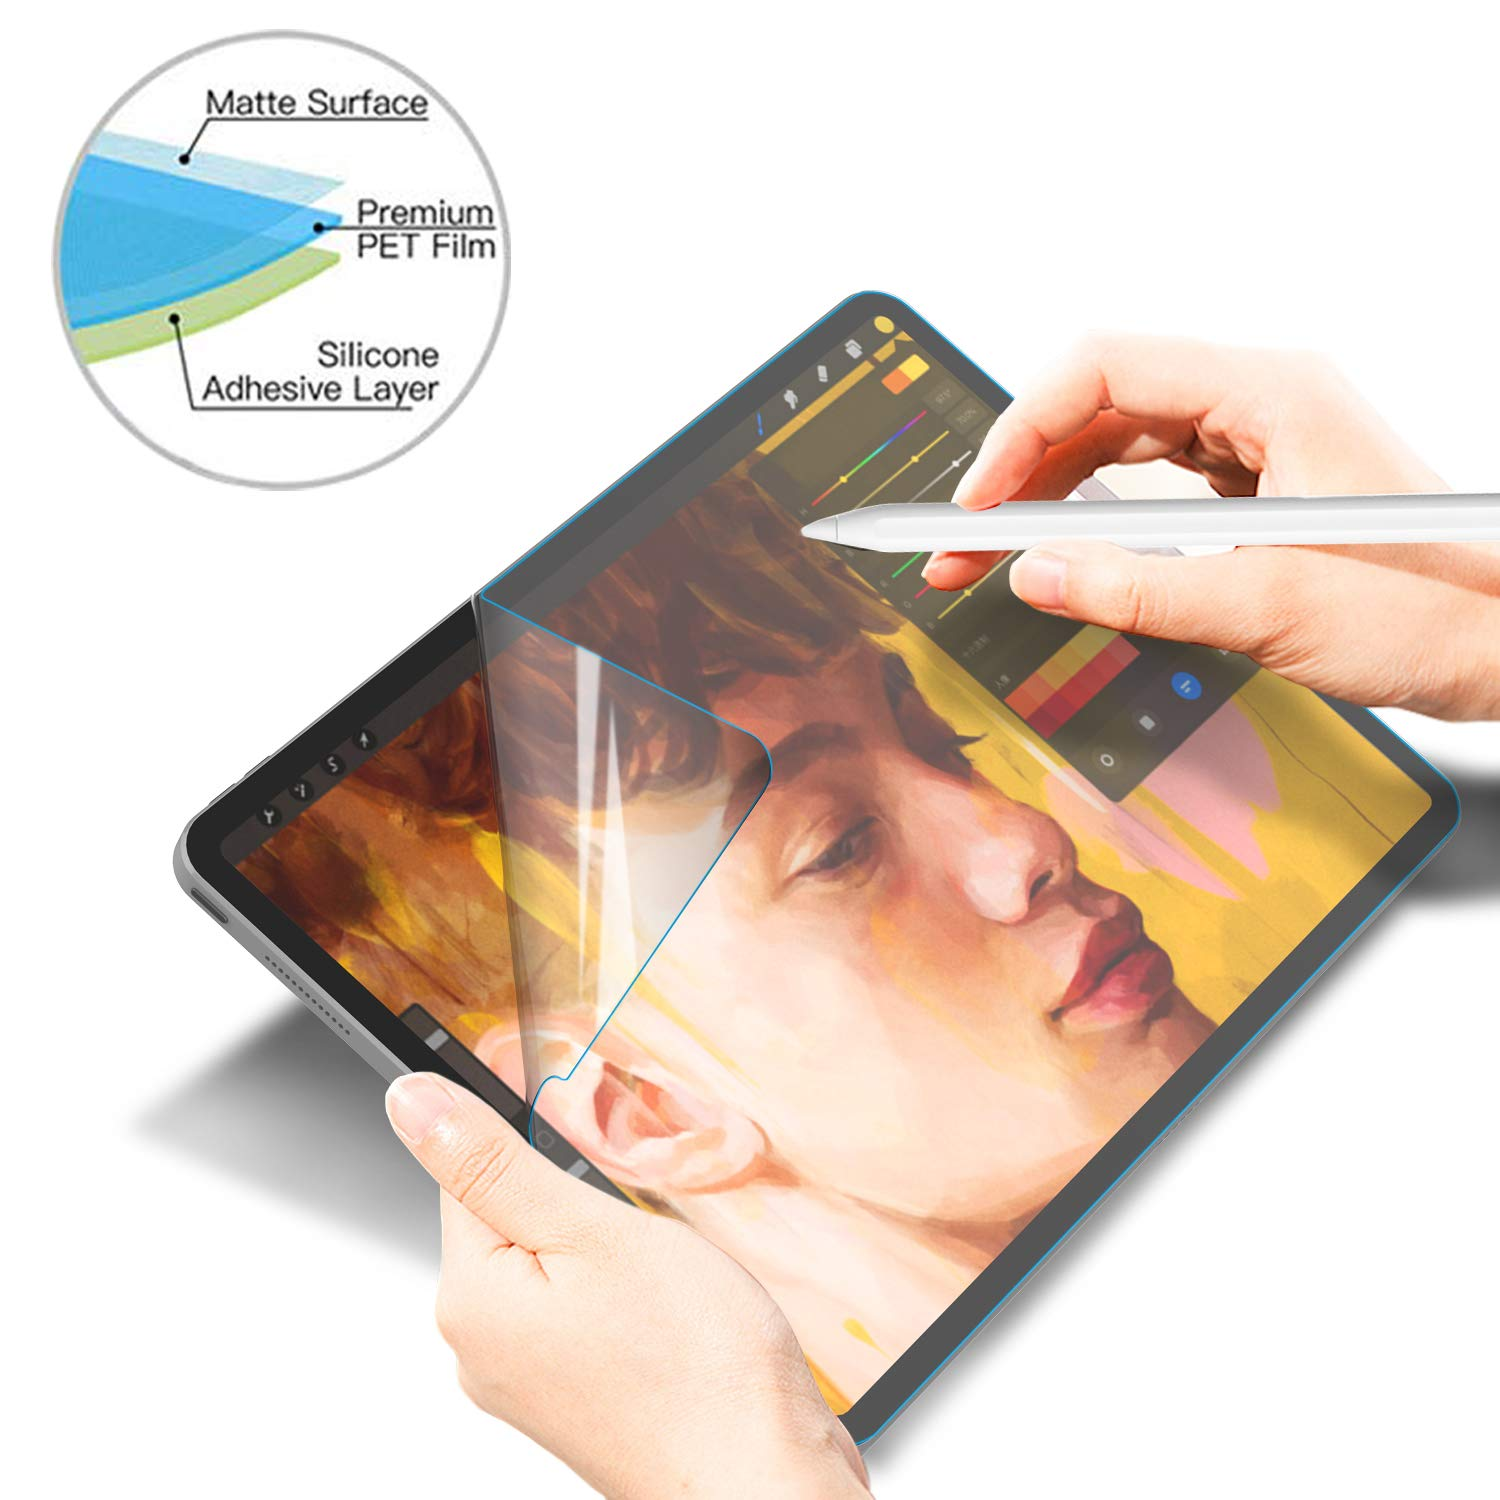 Soke iPad Pro 11 Screen Protector Paper-Like,[Anti Glare][Scratch Resistant][Paperlike Film Writing][Apple Pencil Compatible] High Touch Sensitivity for Apple iPad Pro 11 Inch 2018